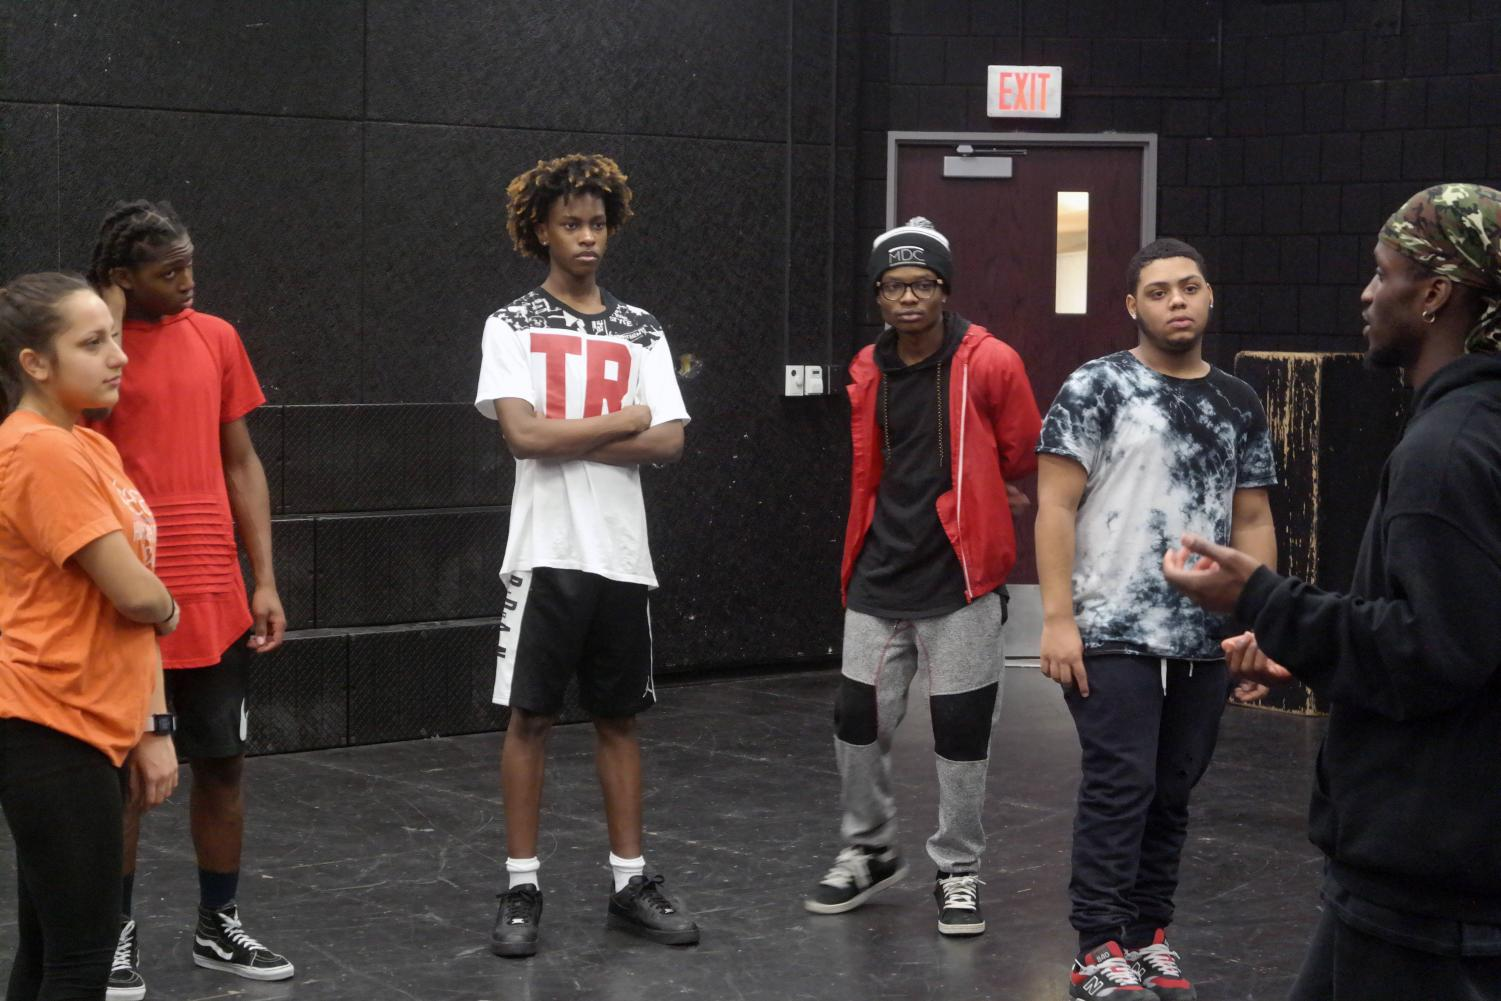 Students in the production have been rehearsing multiple days a week.